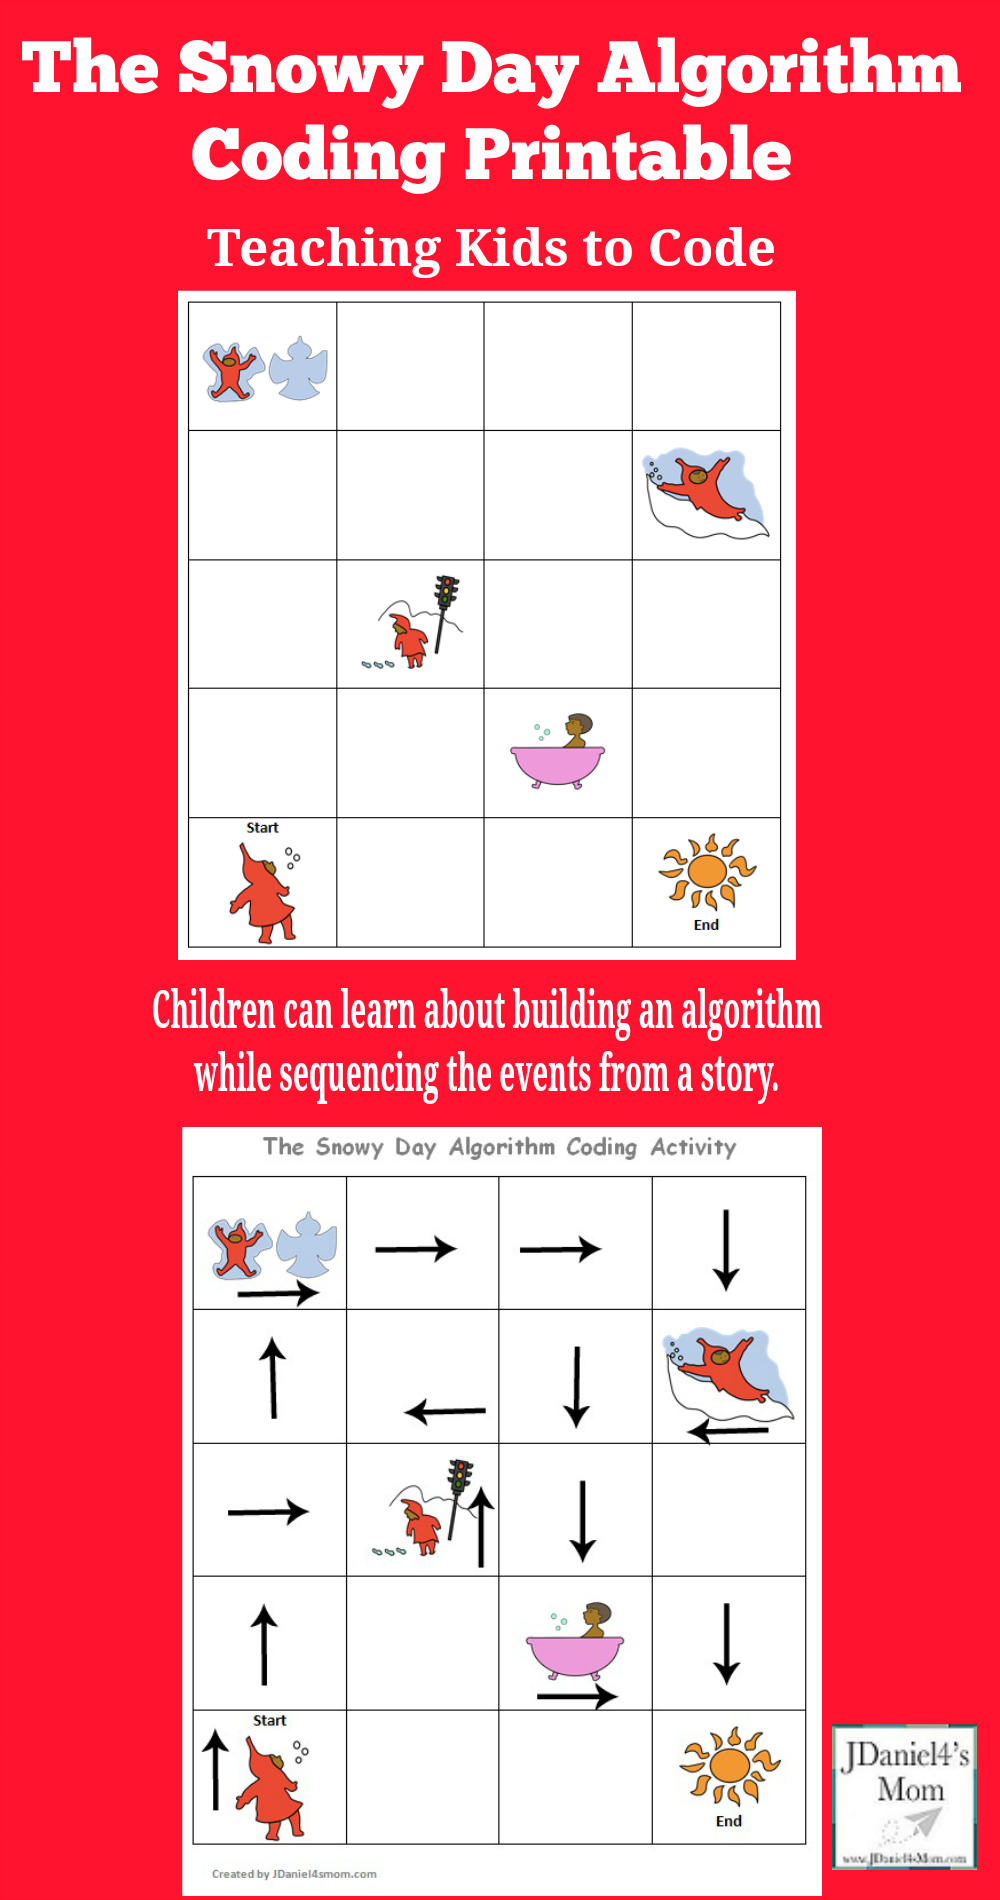 Teaching Kids to Code : The Snowy Day Coding Algorithm Activity Printable - Children at home and students at school can learn about building algorithms by sequencing the events in a popular children's book.